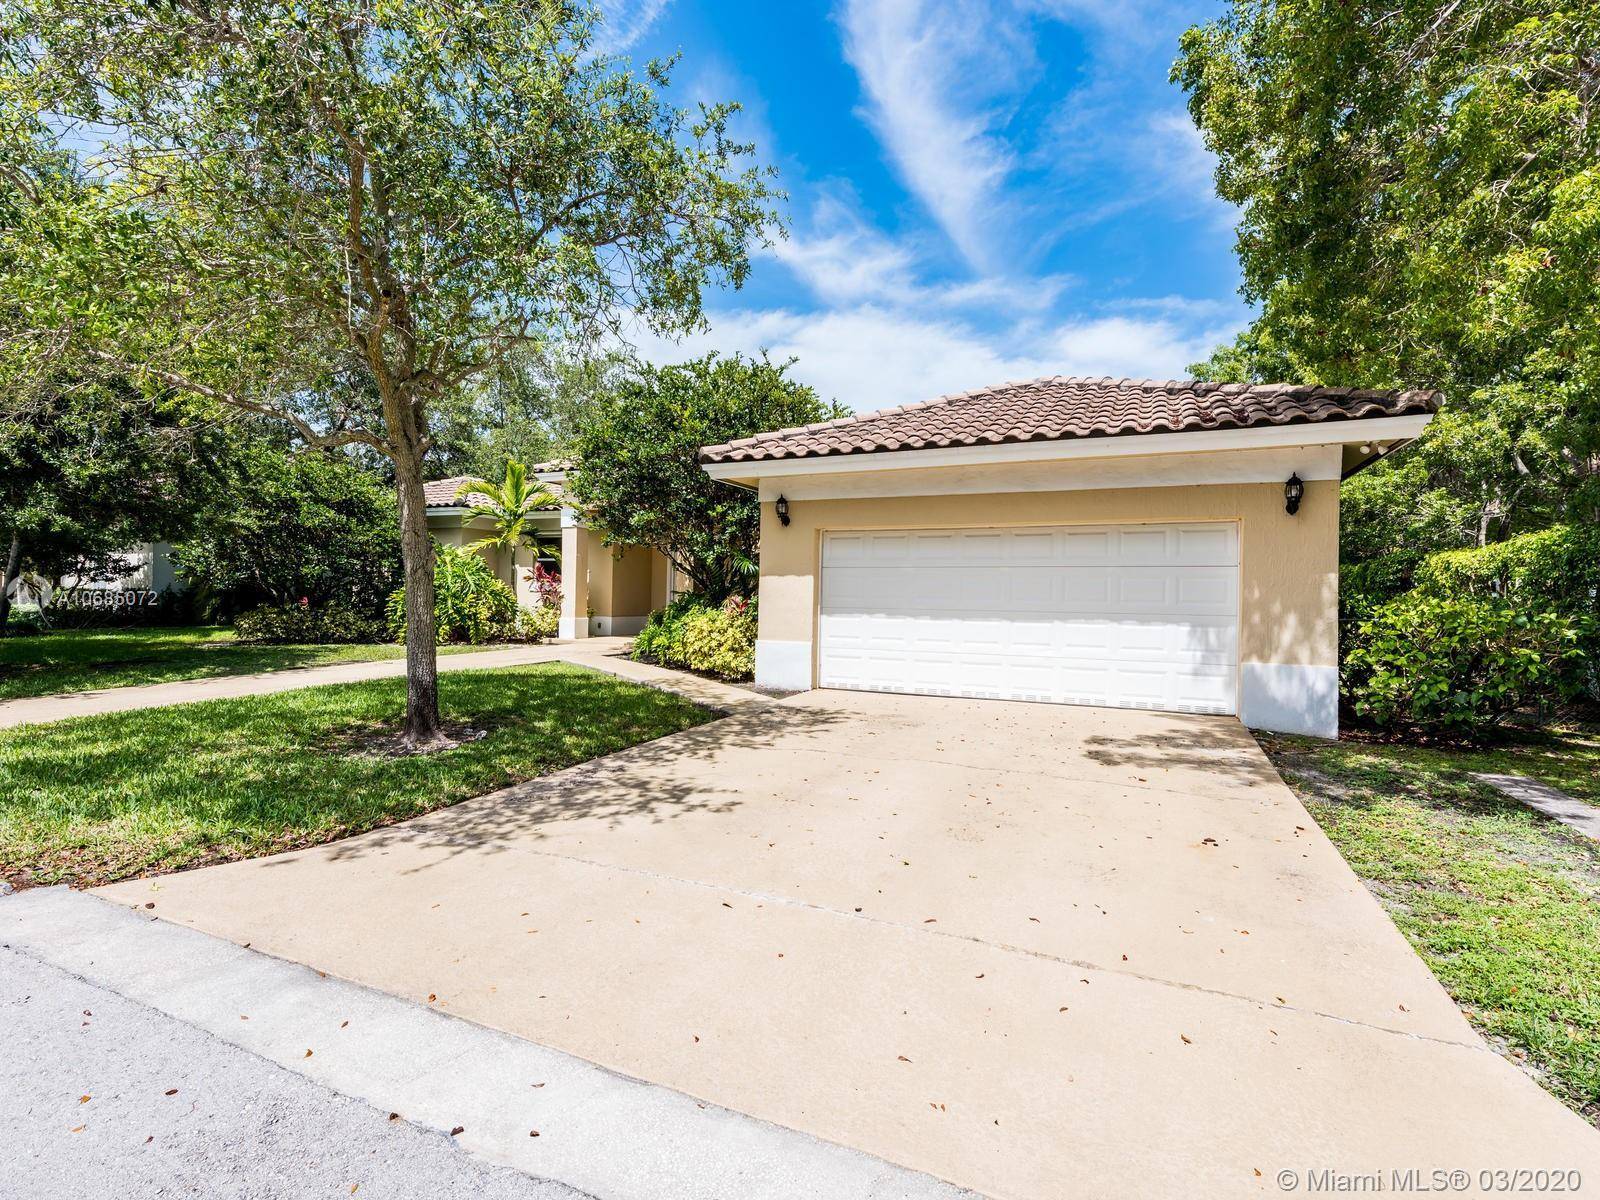 SPECTACULAR 5 BEDROOM, 4 BATHROOM POOL HOME IN DESIRABLE PINECREST.  AMAZING FLOOR PLAN AND HIGH CEI